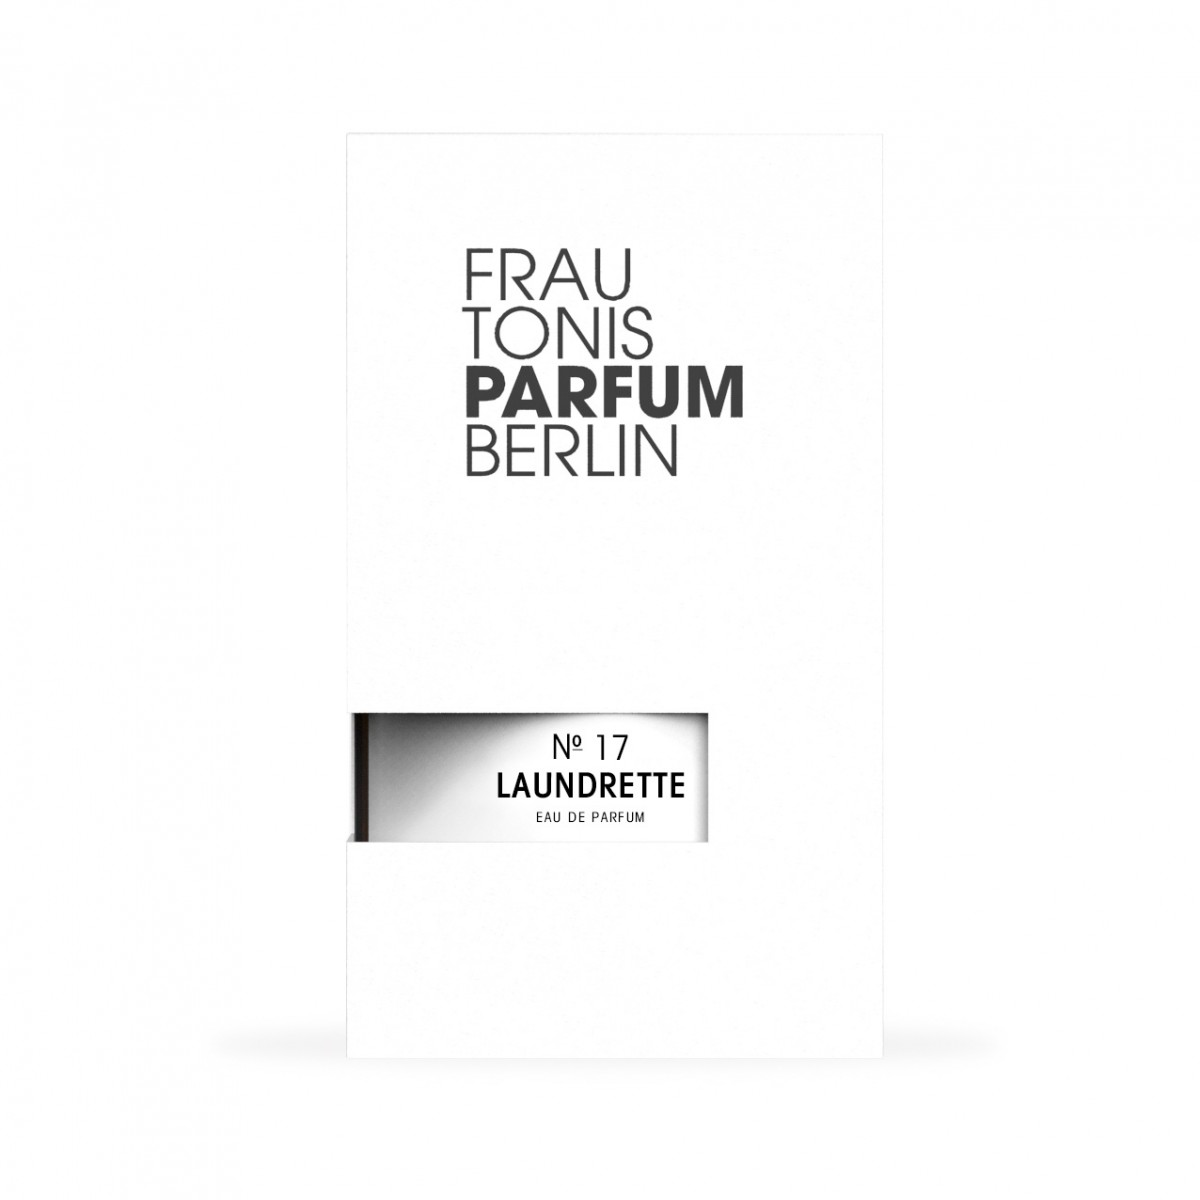 No. 17 Laundrette | Eau de Parfum (50ml)